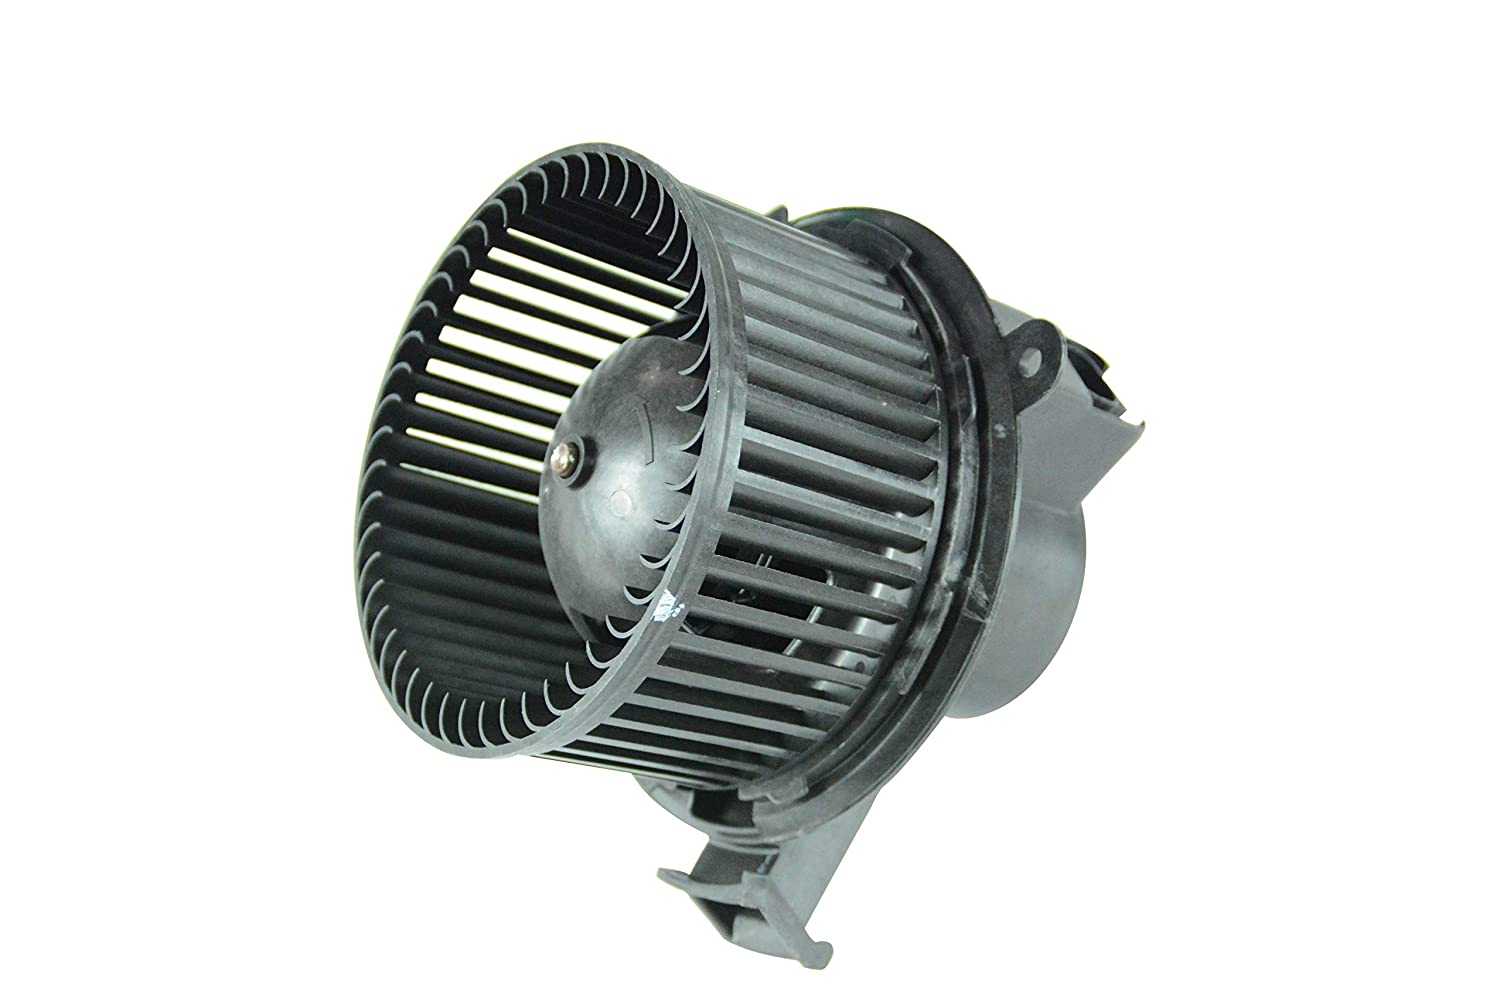 SHOWSEN PM9365X HVAC AC Heater Blower Motor W//Fan Cage Fit 07-17 GMC Acadia 08-14 Buick Enclave 09-12 Chevrolet Traverse 07-10 Saturn Outlook